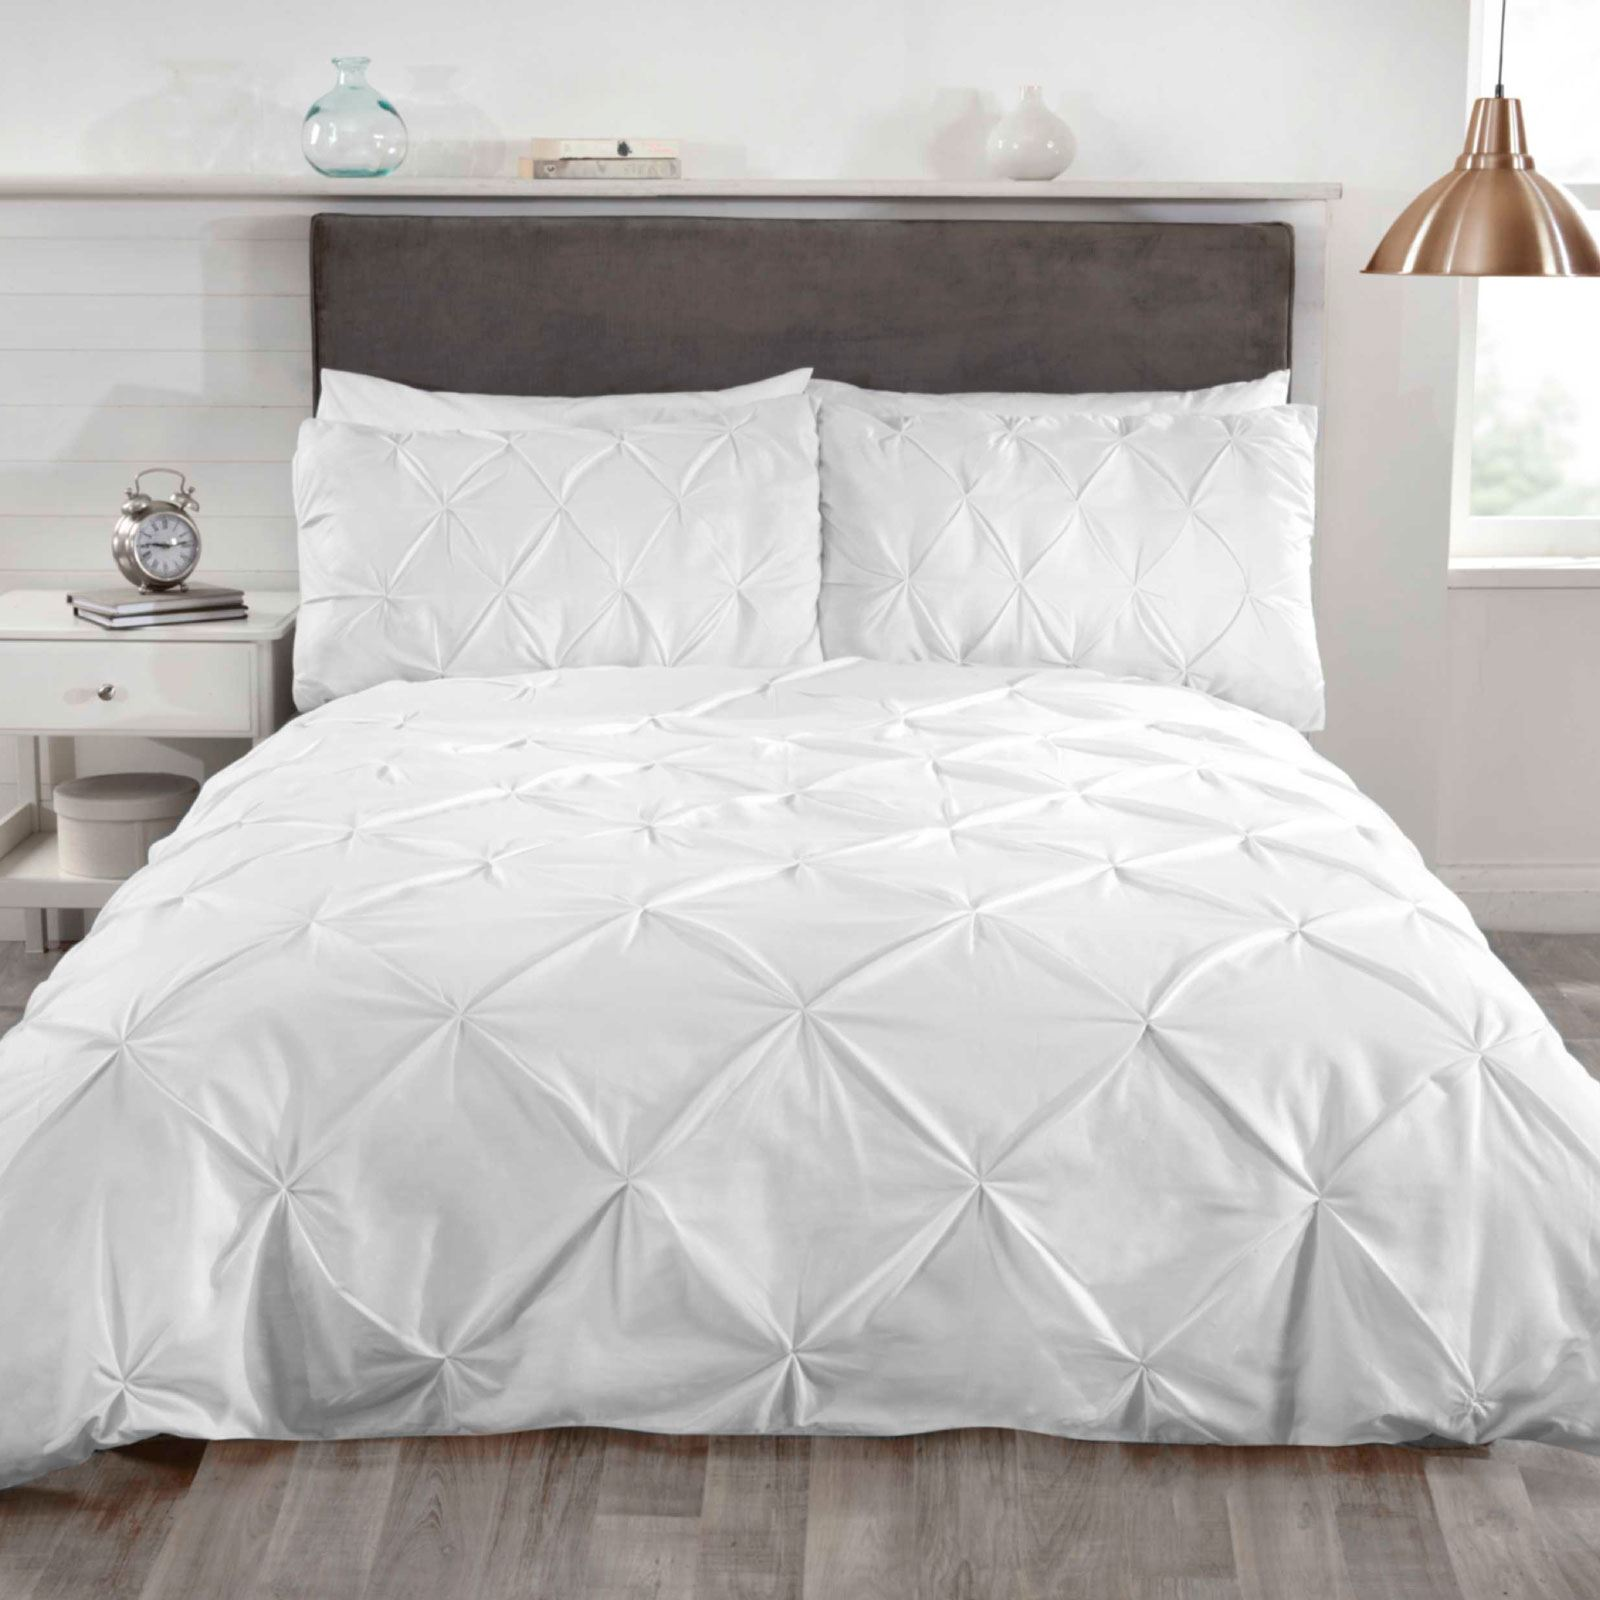 BALMORAL PIN TUCK WHITE SUPER KING SIZE DUVET COVER SET LUXURY